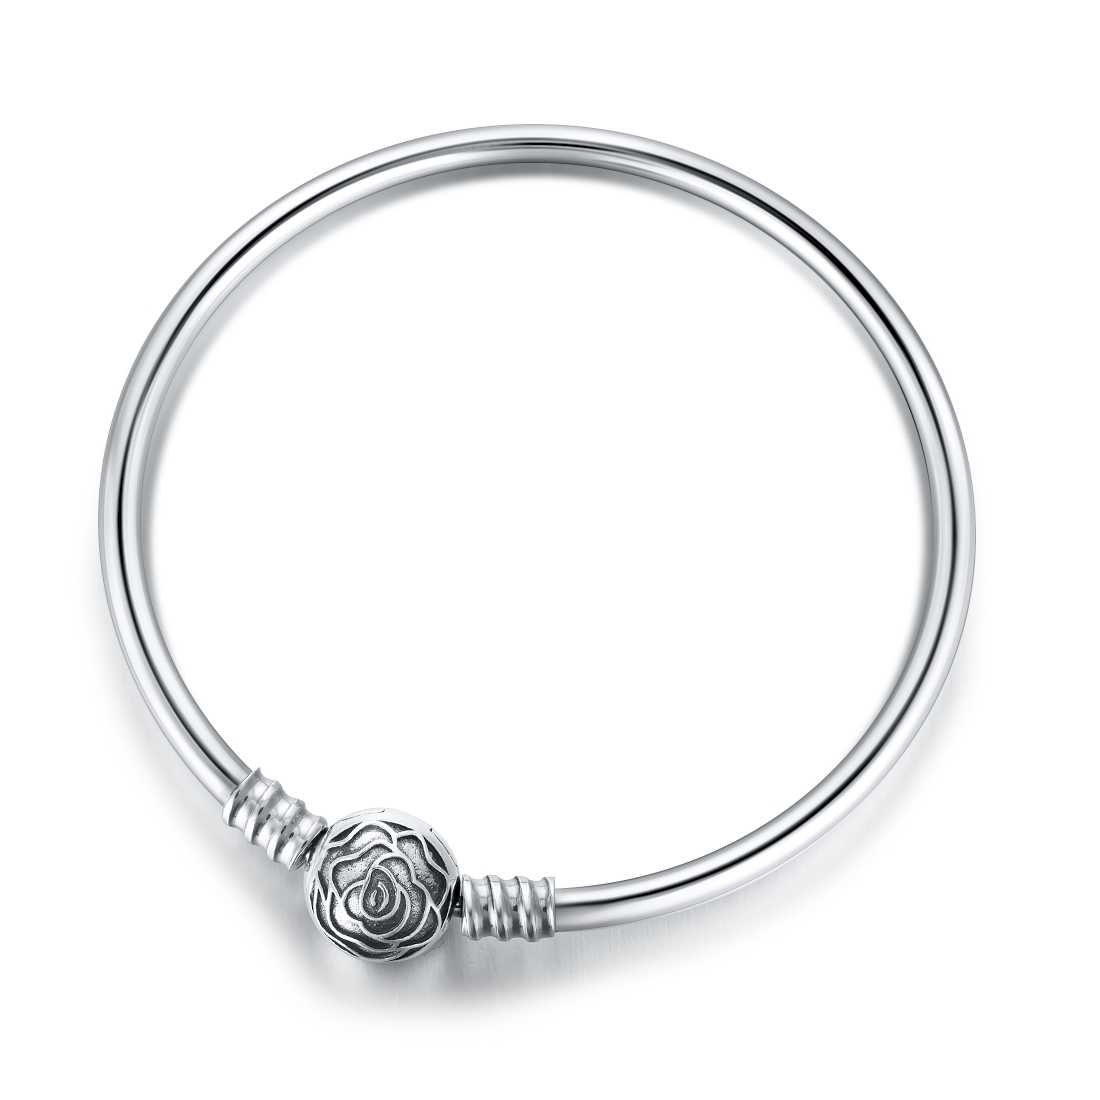 Jiayiqi 17-20cm Silver Bangle 925 Sterling Silver Rose Round Clip Charm Smooth Tube Bracelets For Women Fit Brand Jewelry DIY